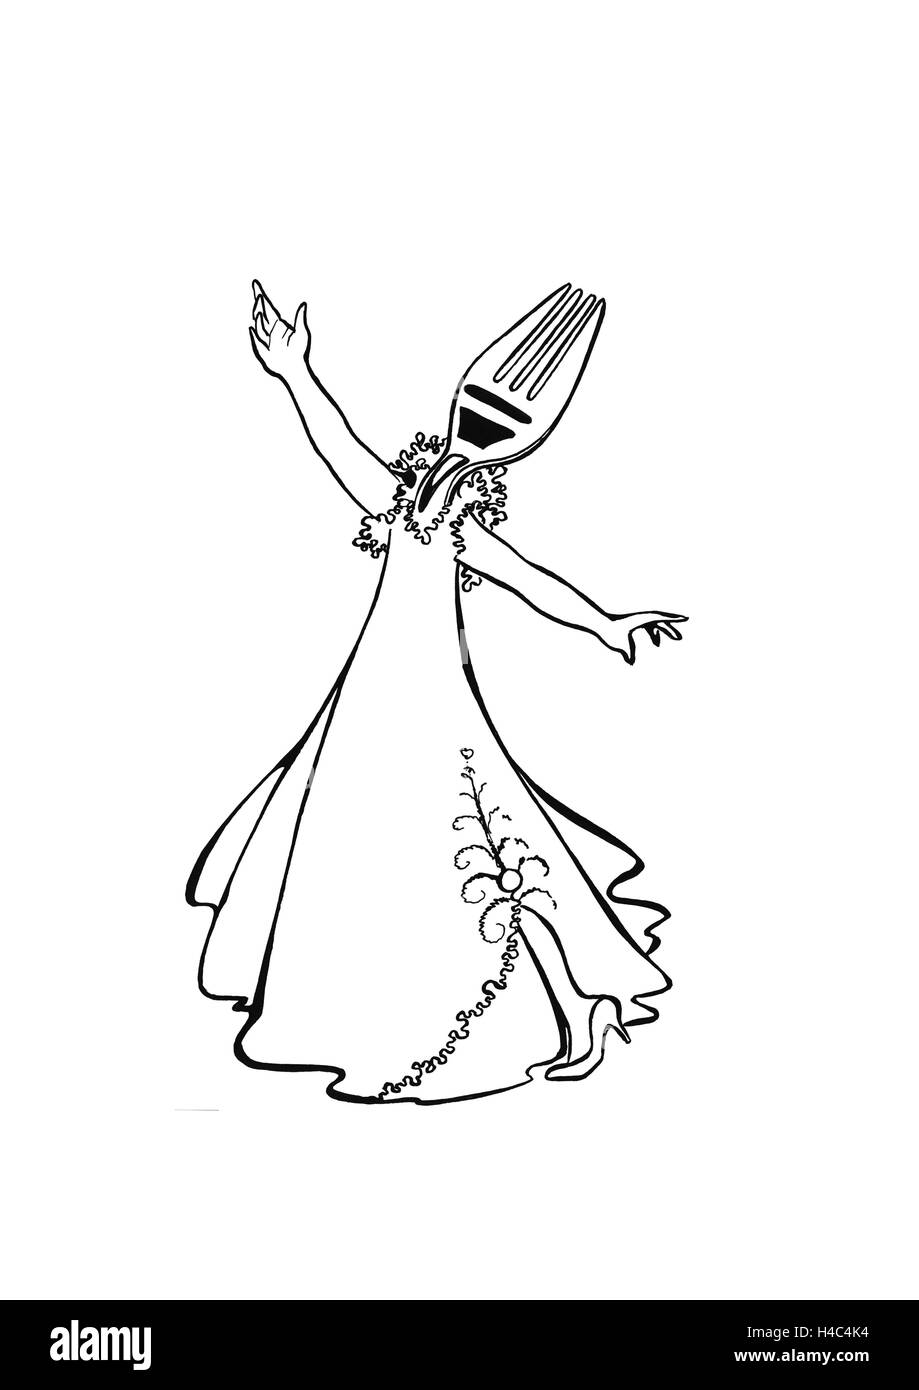 Dancer as a fork in evening gown - Stock Image